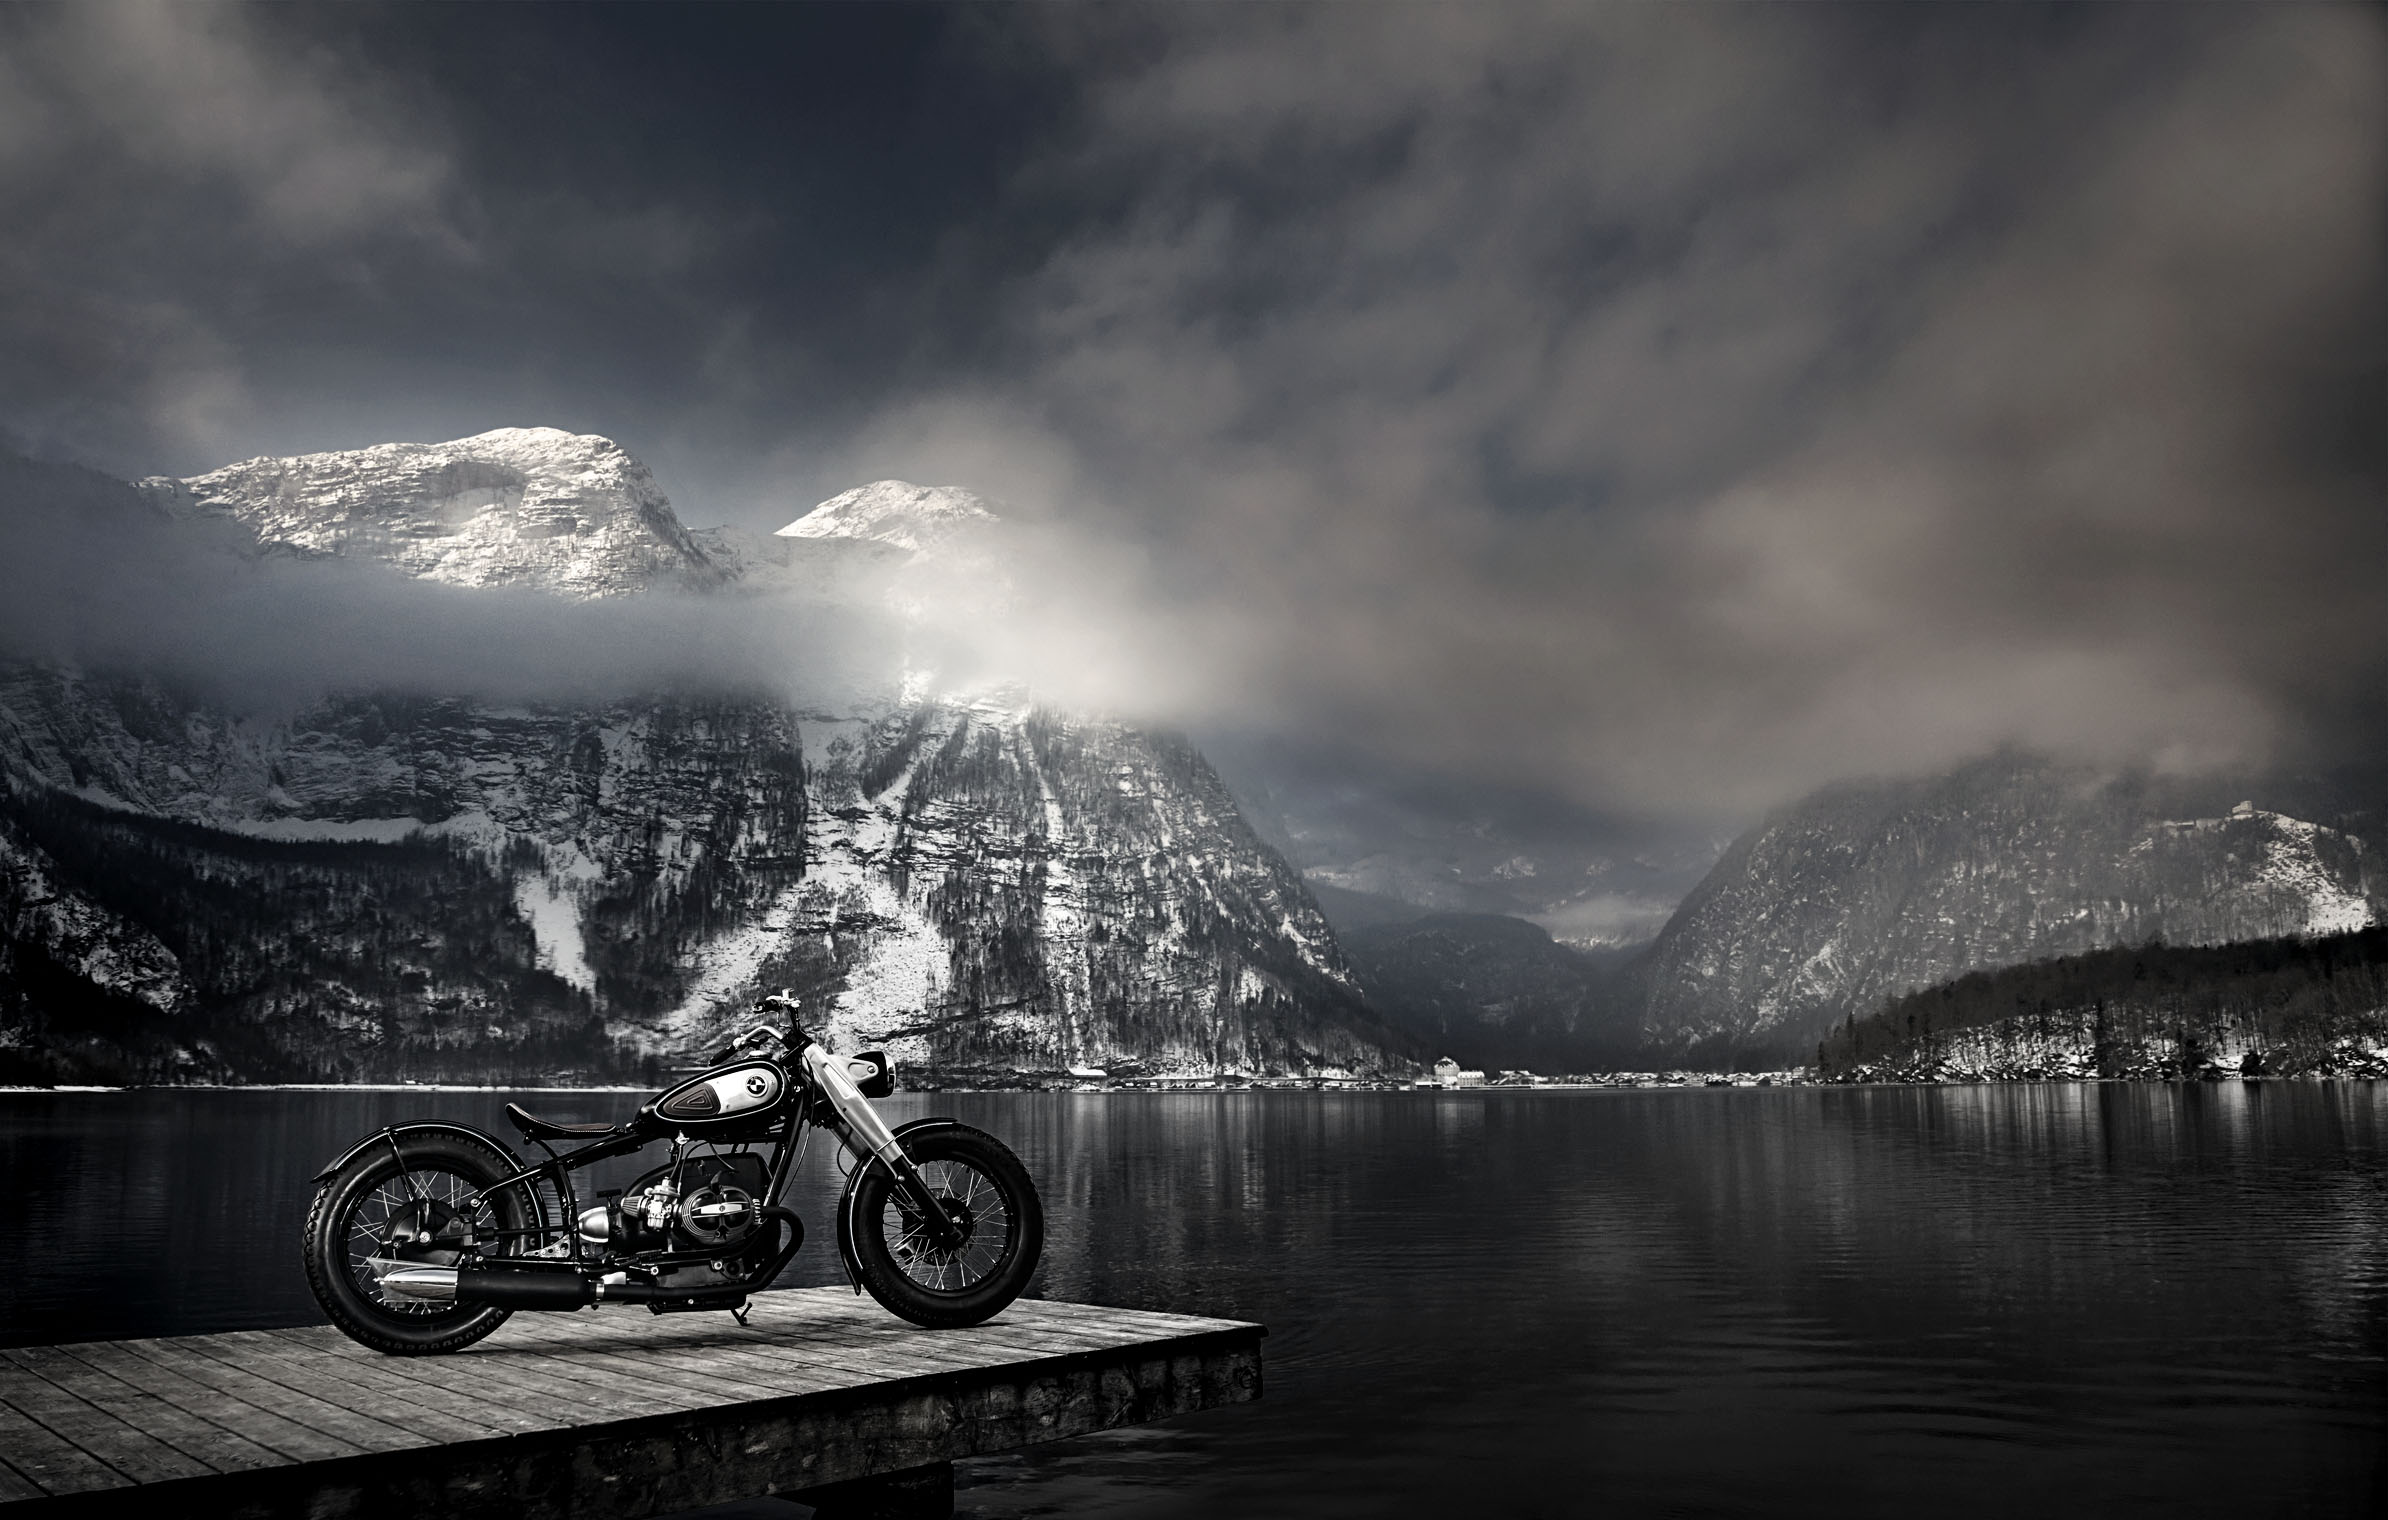 BMW_bobber_custom_motorcycle_lake_mountains_austria2